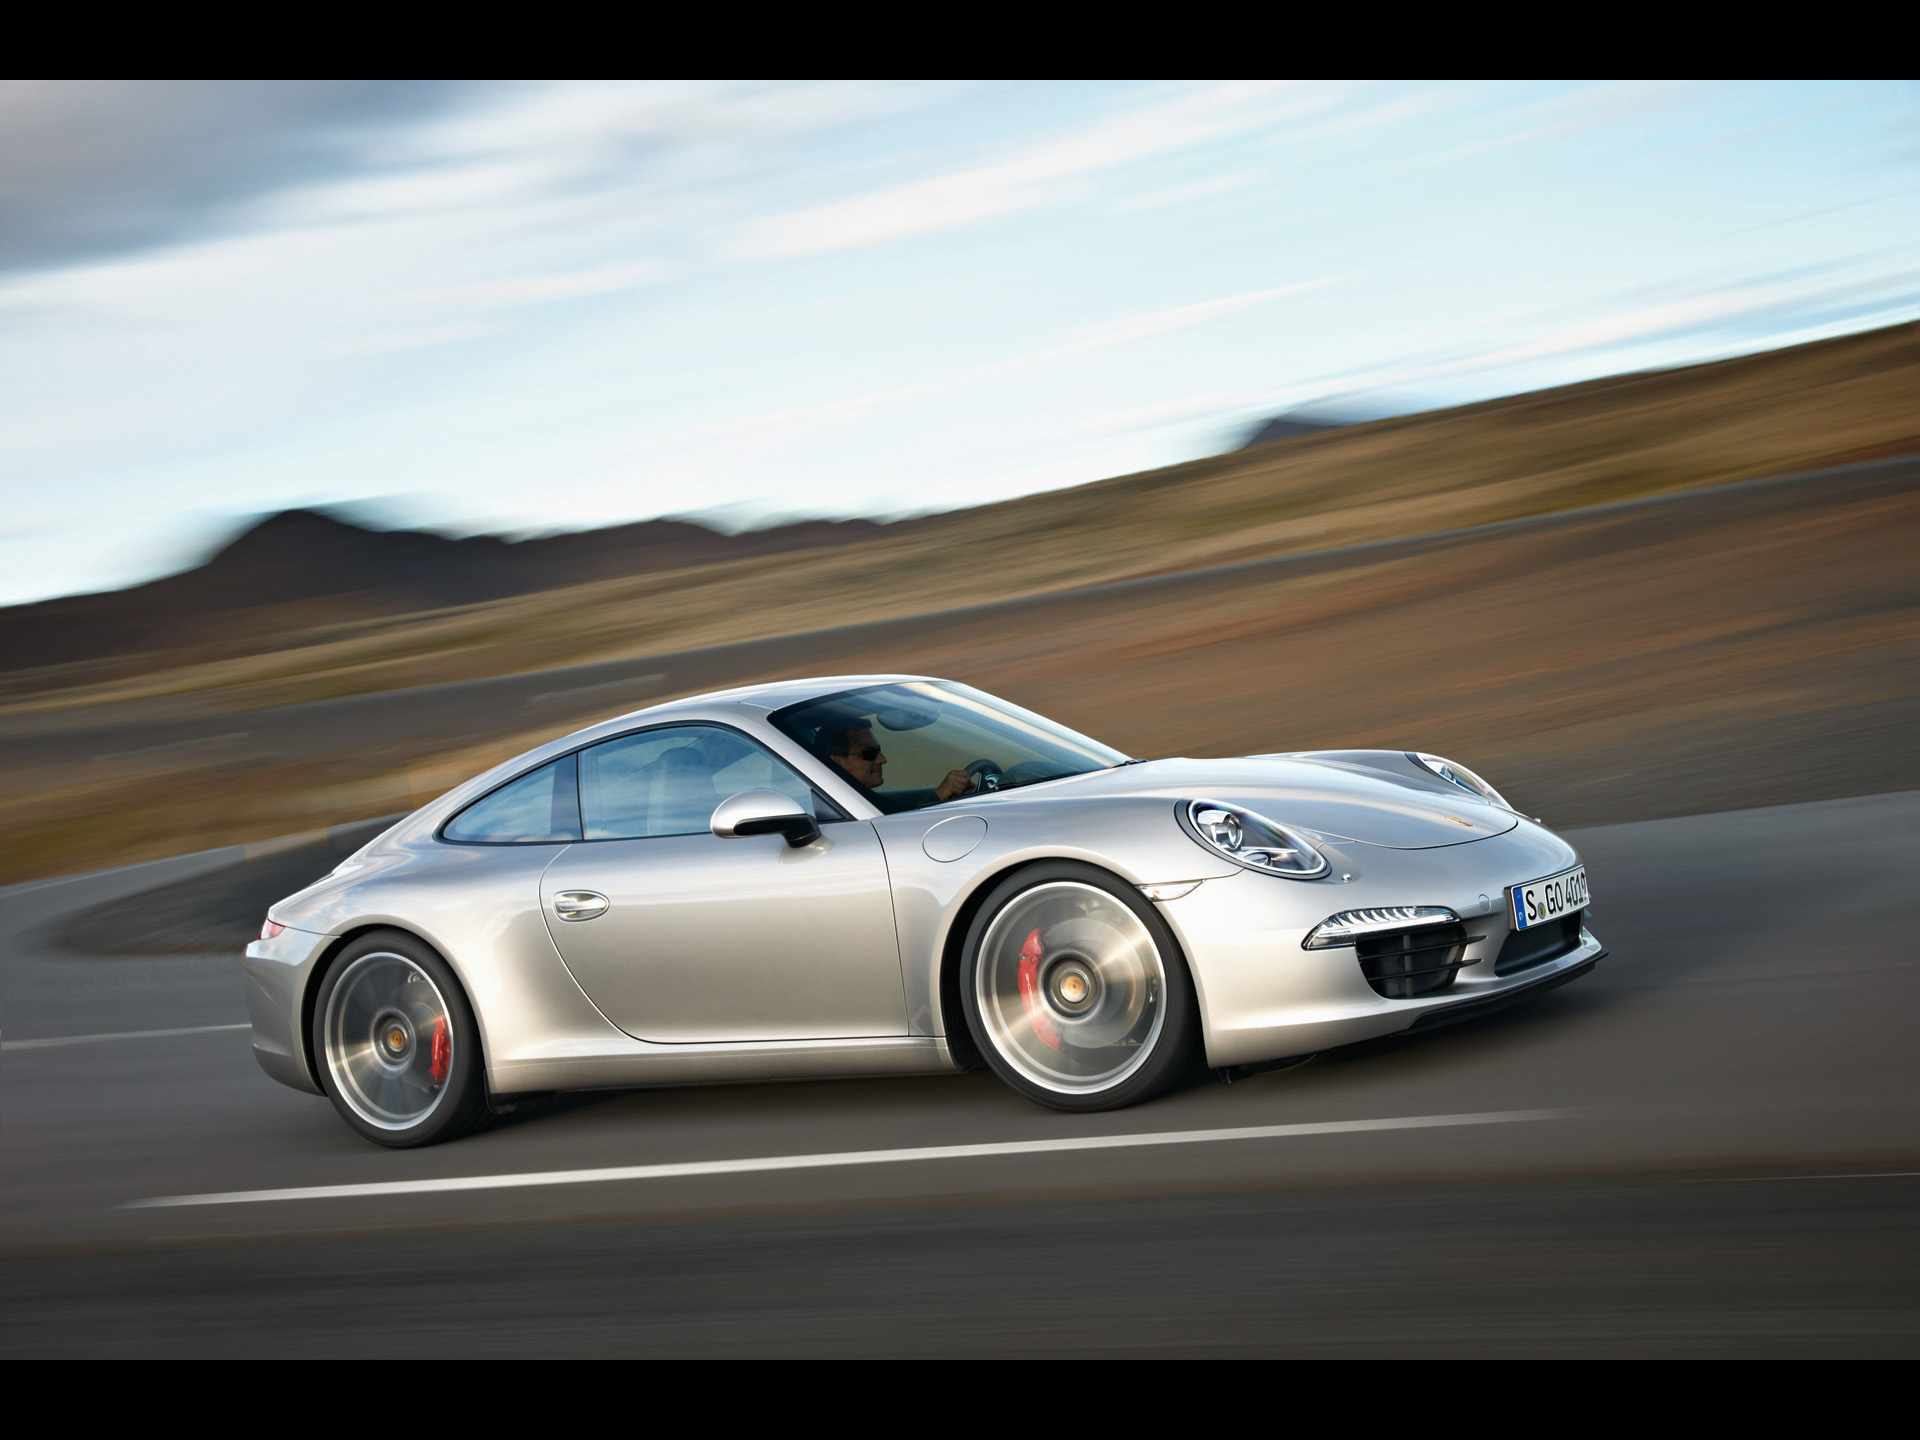 2019 Porsche 911 Carrera Coupe photo - 5